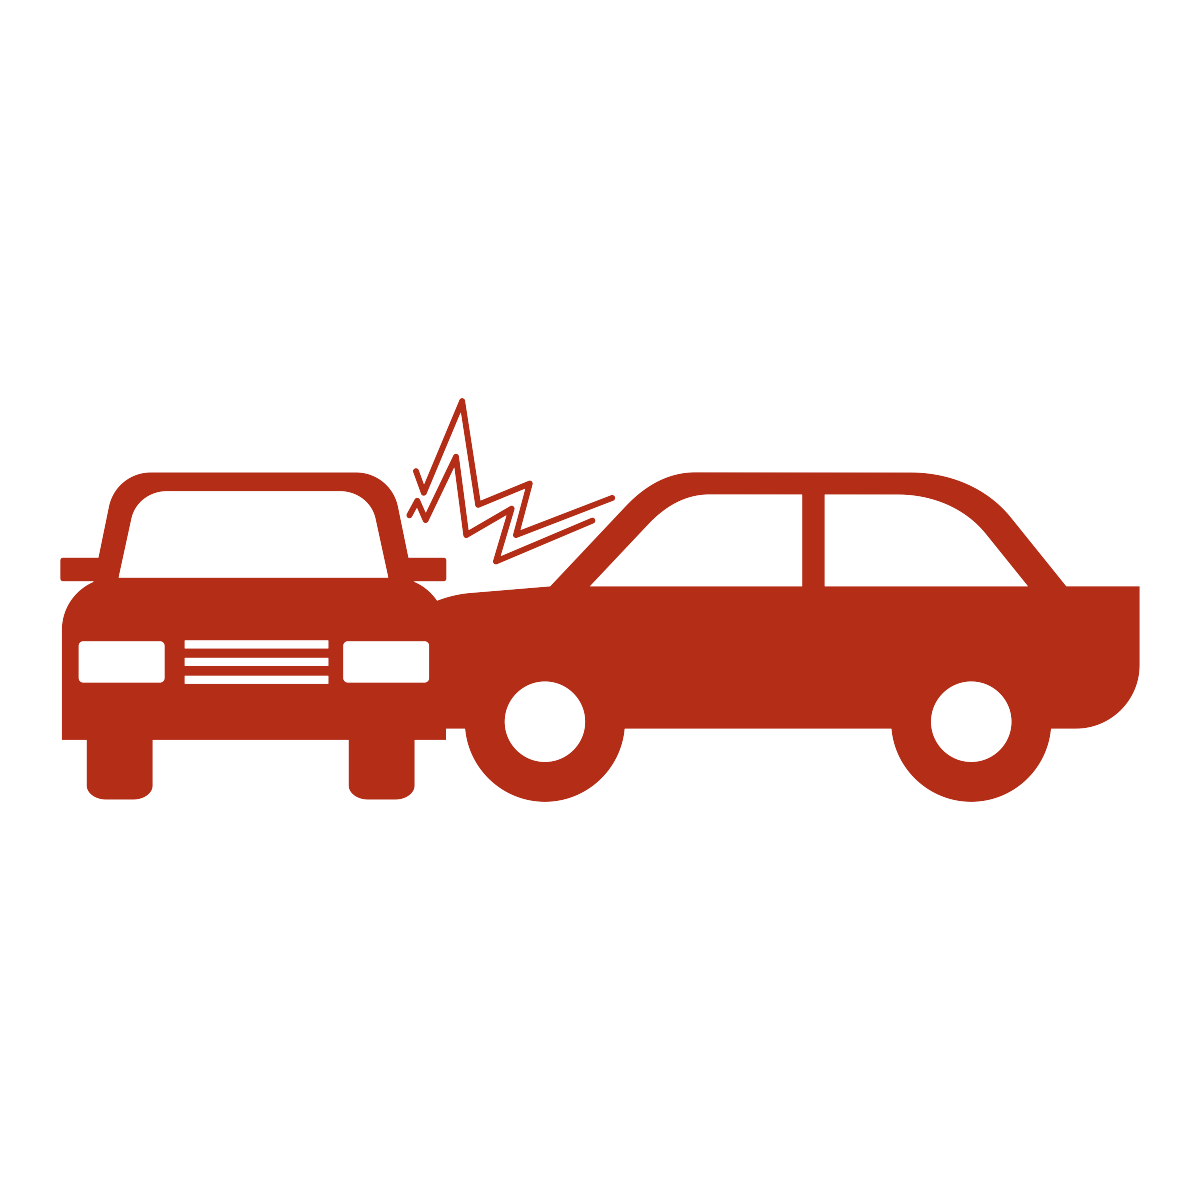 icon of two cars crashing into each other